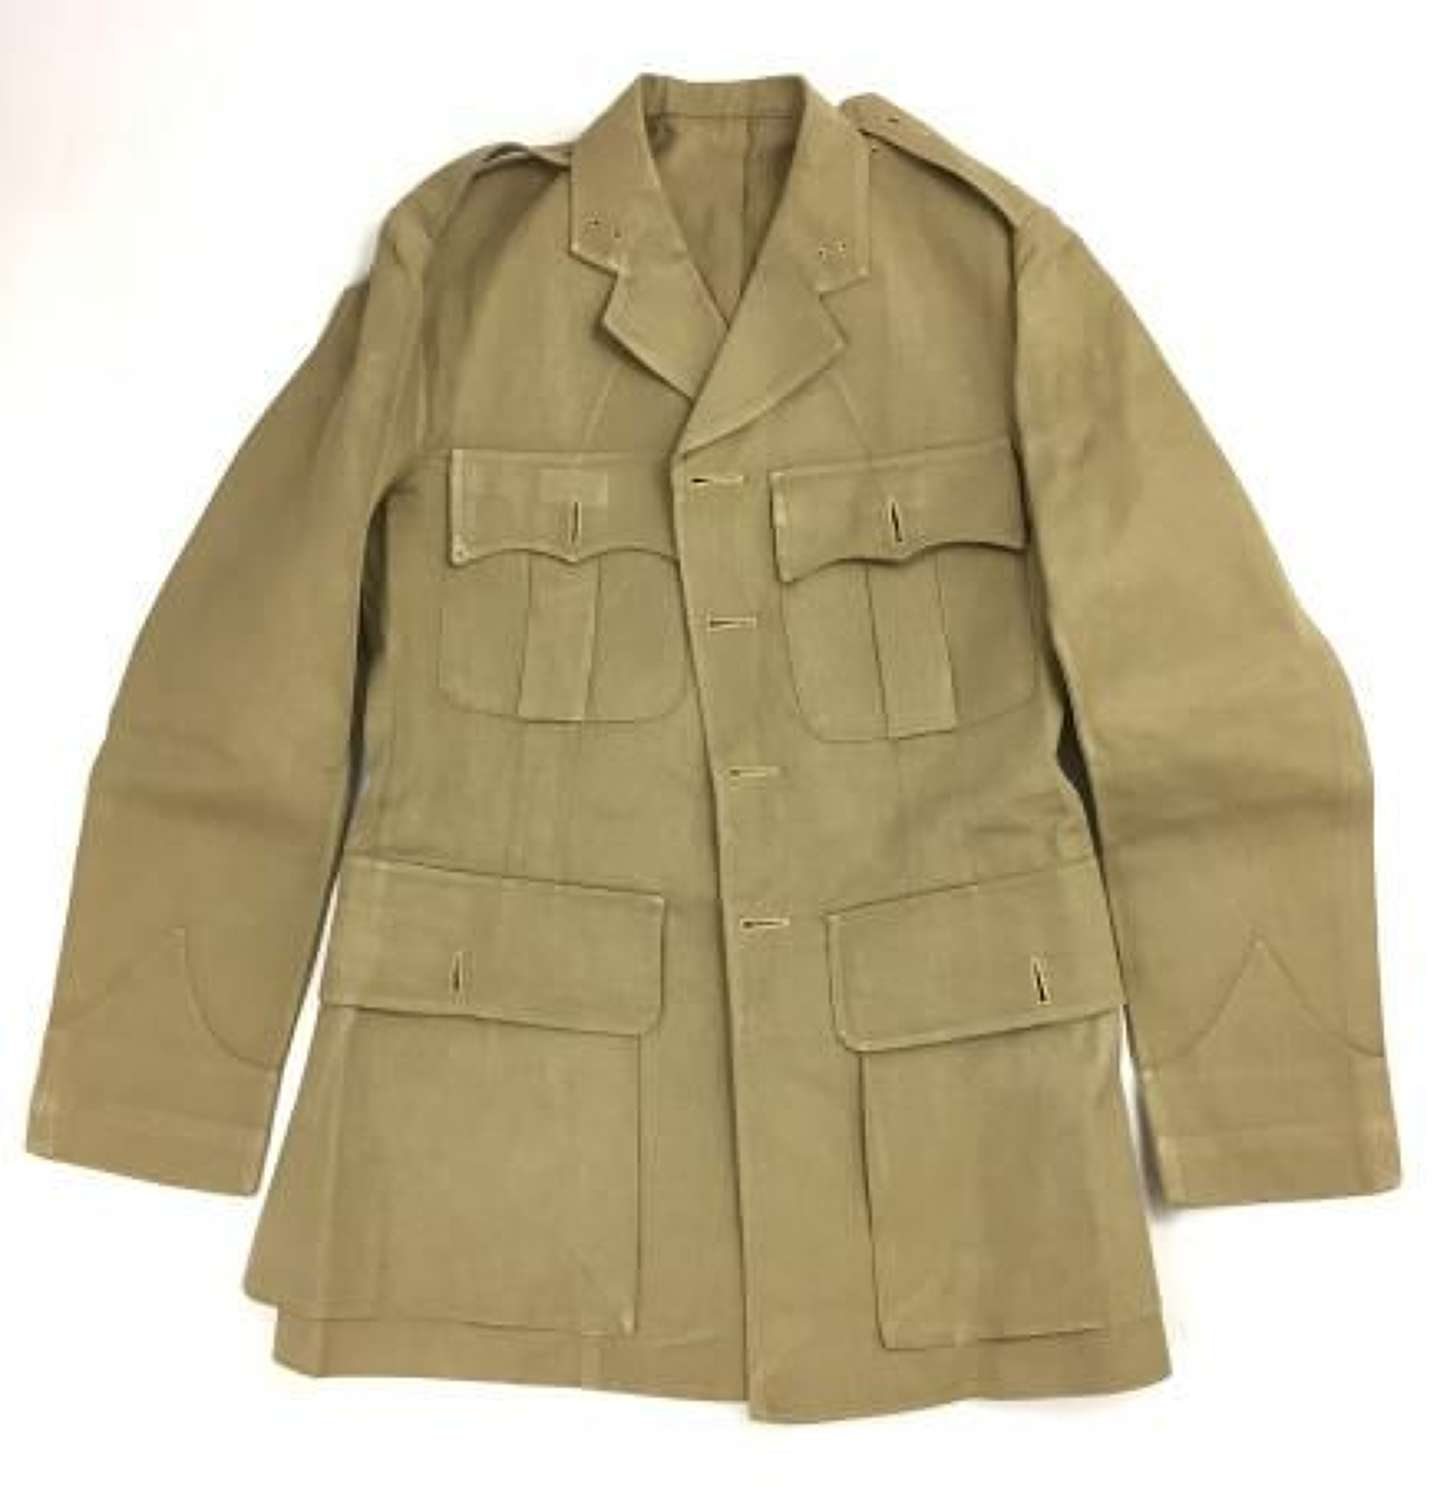 Original Inter-war Period British Officers Khaki Drill Tunic